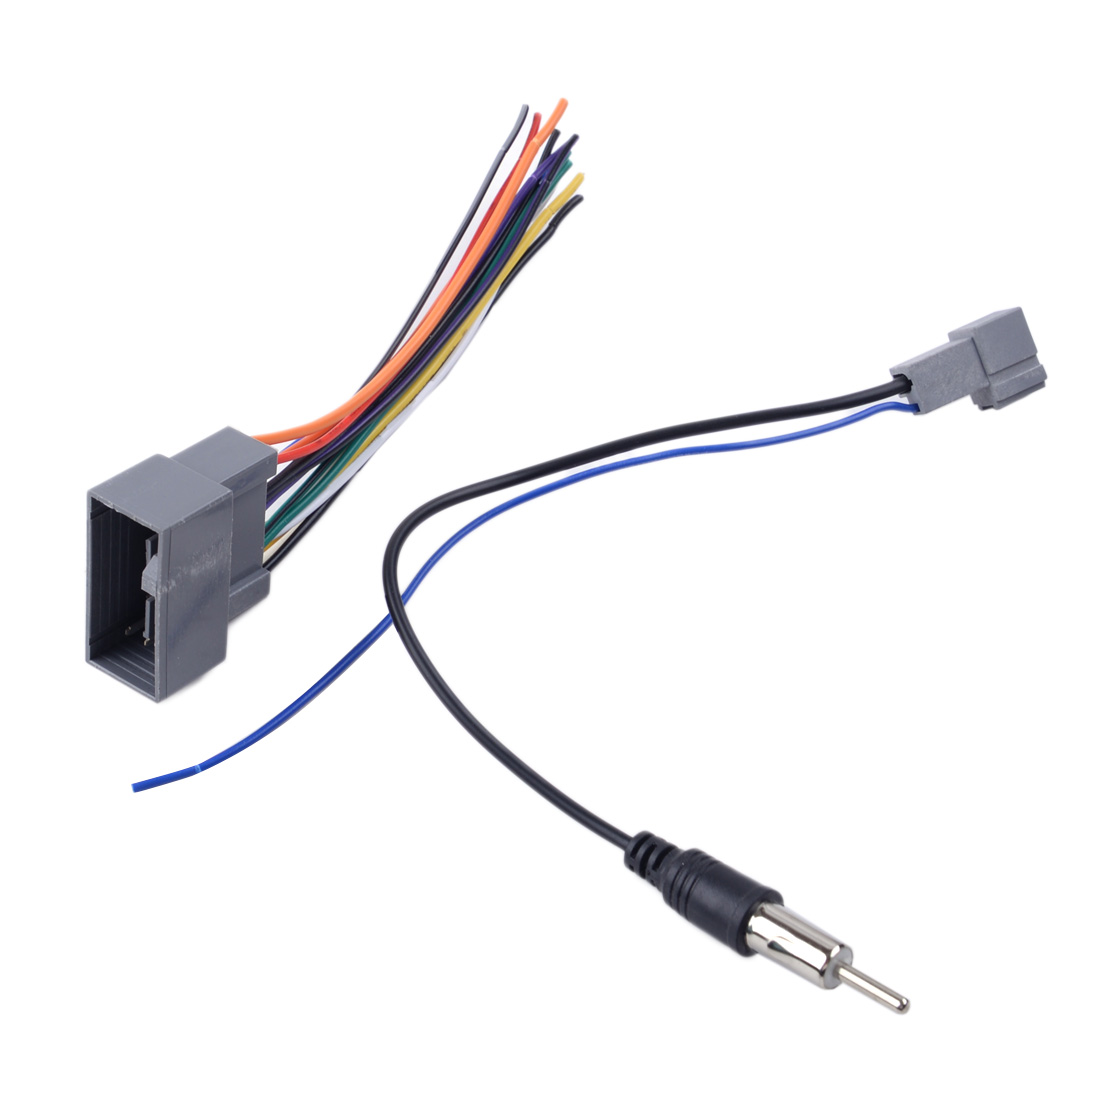 2 pcs <font><b>Radio</b></font> Stereo Wire Wiring Harness Cable Antenna <font><b>Adapter</b></font> Fit For <font><b>Honda</b></font> Civic CRV Odyssey <font><b>Jazz</b></font> Acura TSX image